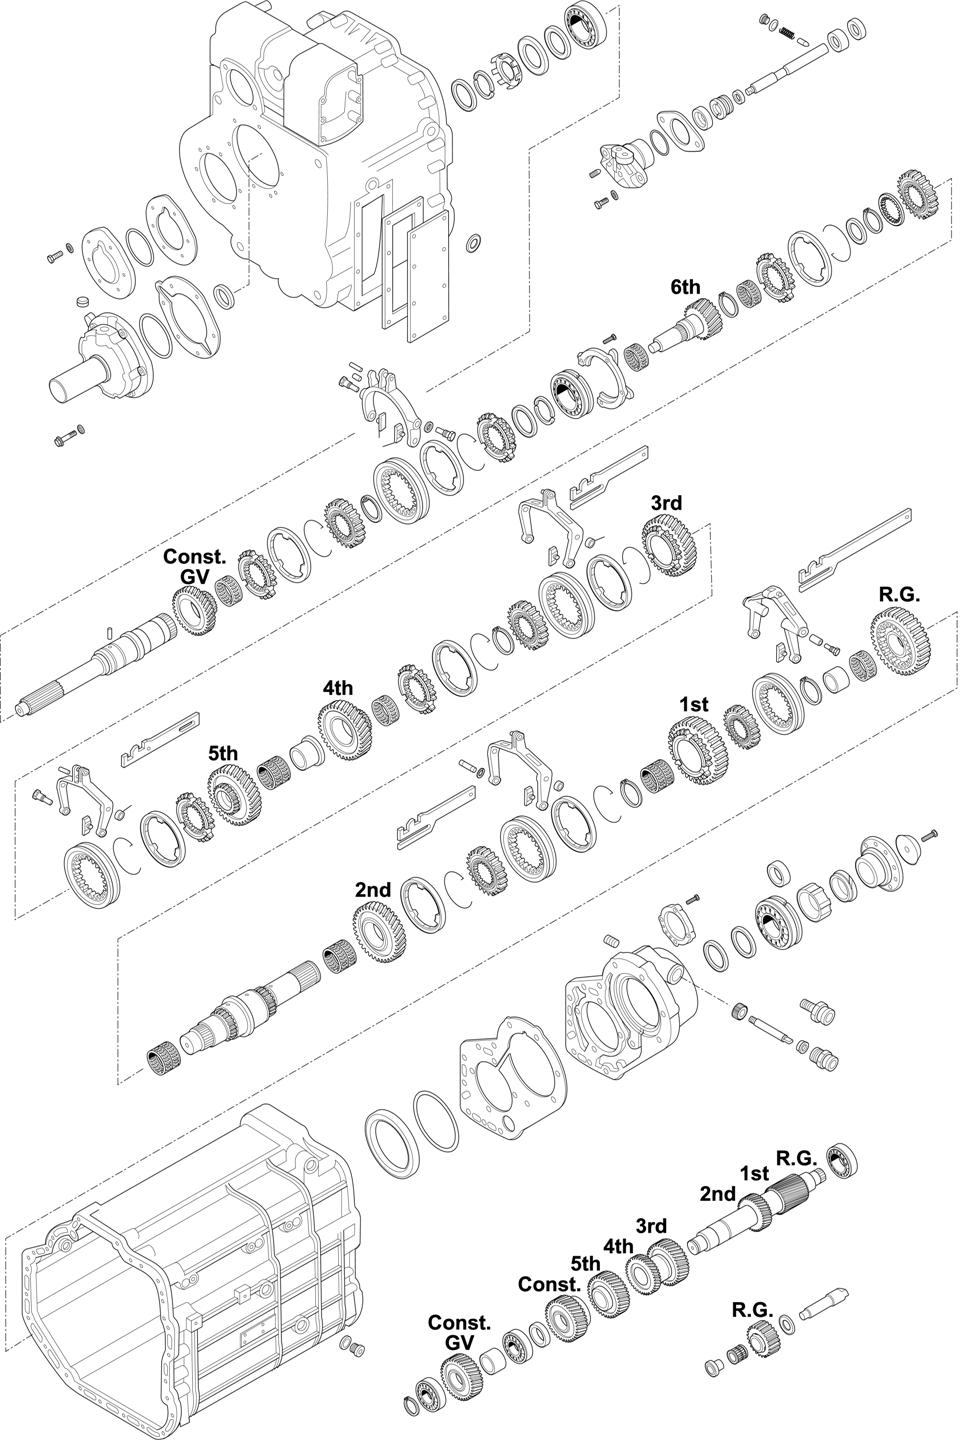 For Gearbox Series: 714.625-627-628-629-634-635-639-661-662-663-665-666-672-673 / 715.120 GV4/110-6/9,0 CHASSIS: 615/616/617/619/621/624/625/650/651/652/653/654/655/656/658/659.XXX MK and SK CHASSIS: 676.XXX - 677.XXX - 679.XXX LK